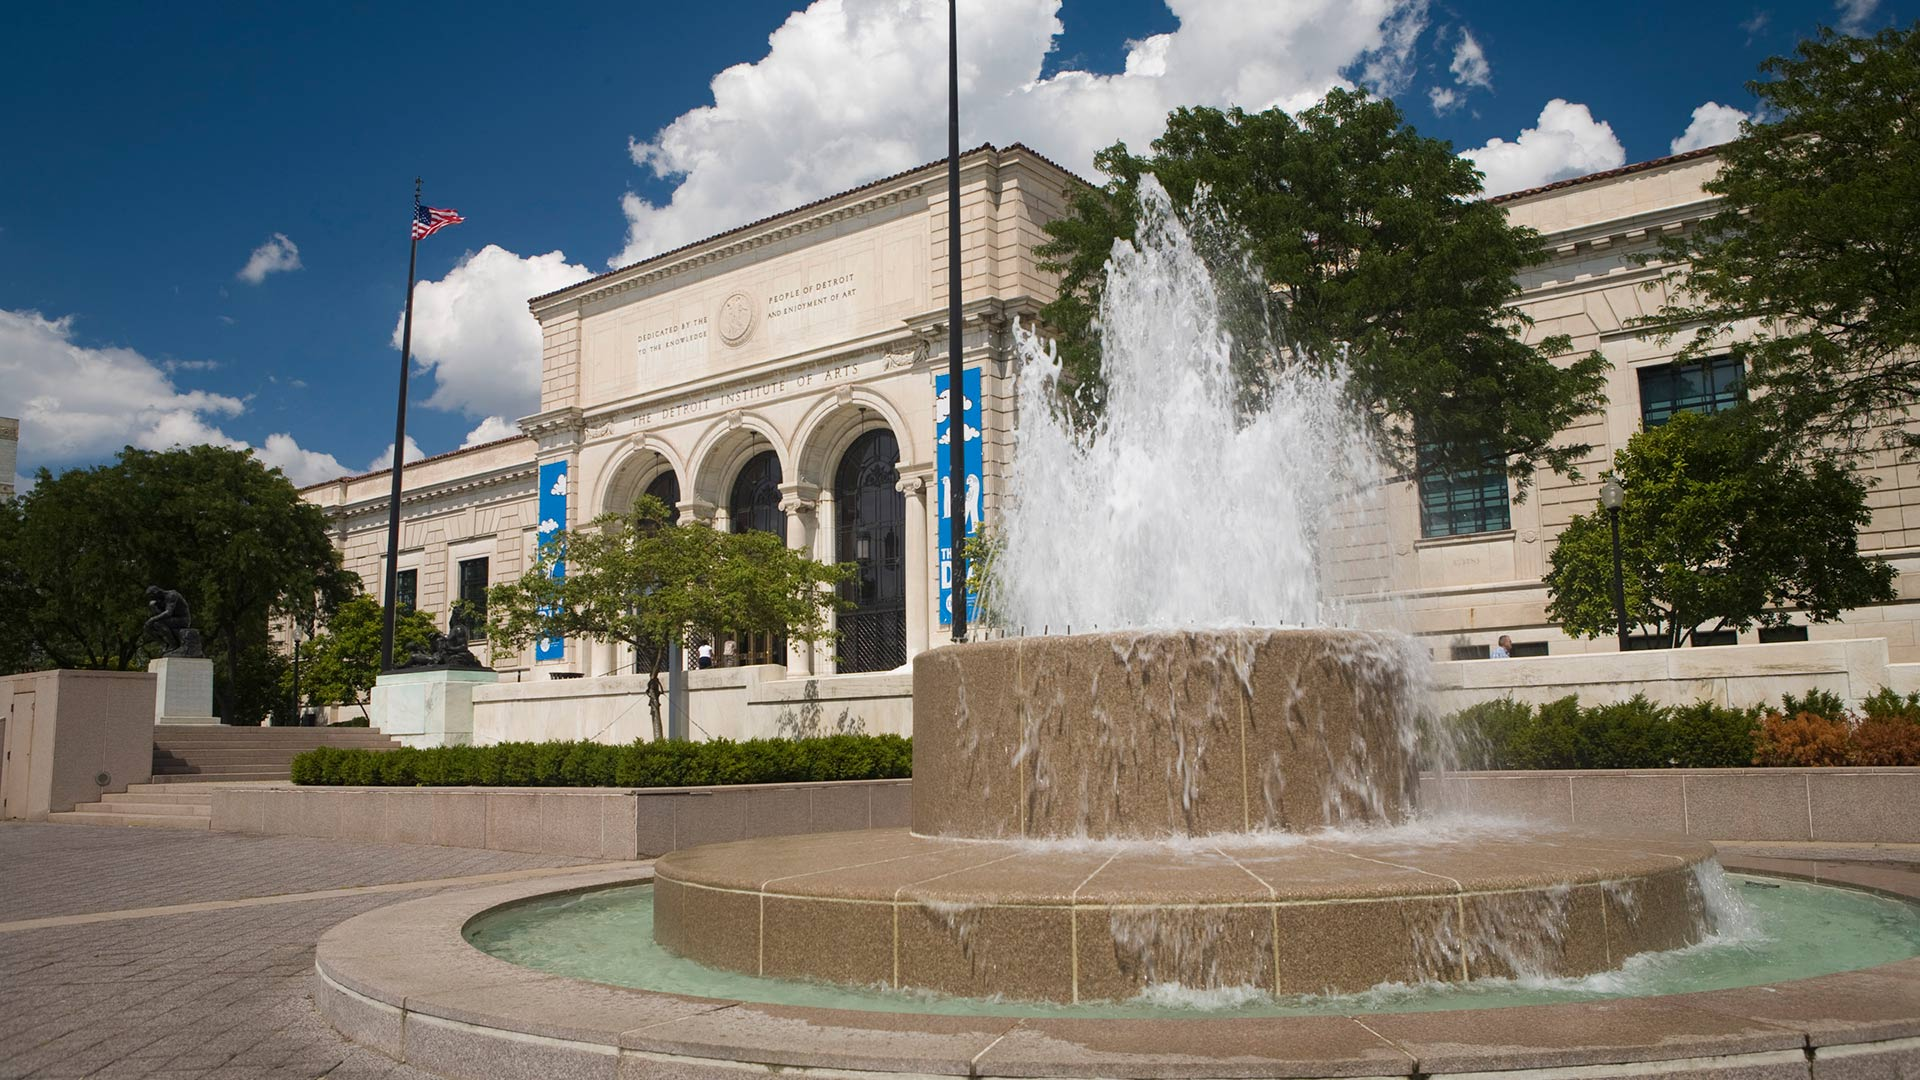 Drupal Redesign The Detroit Institute of Arts